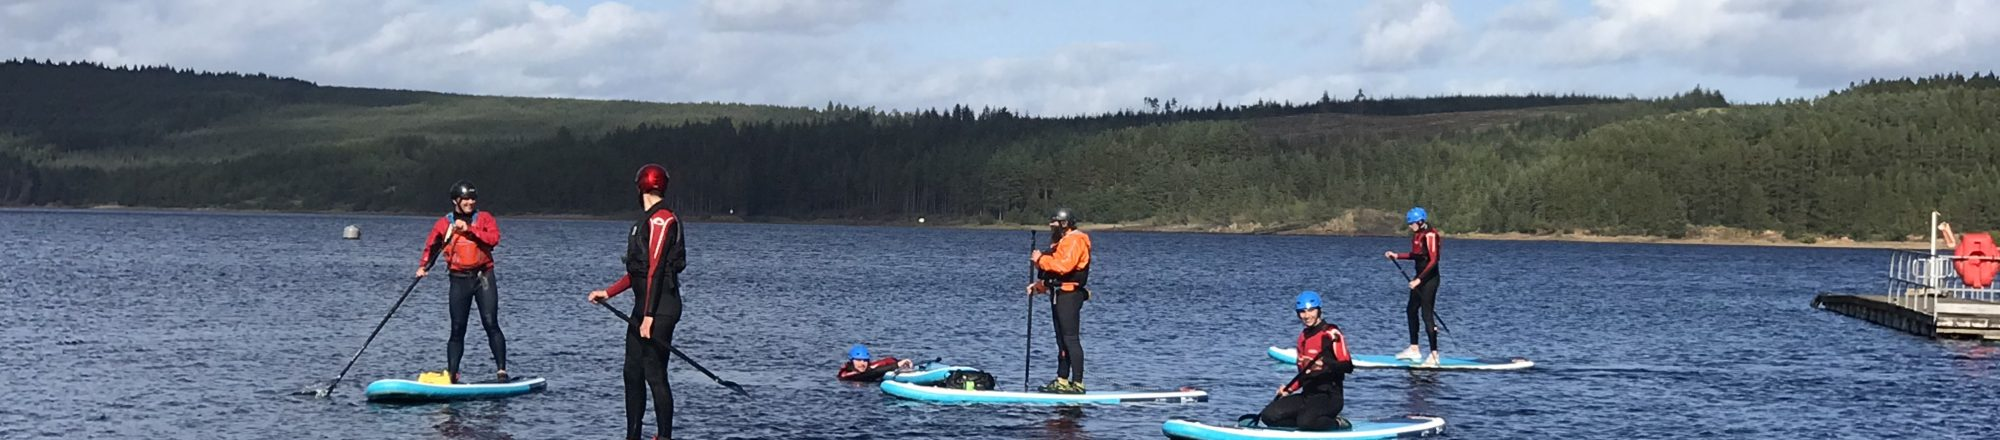 Group of adults paddle boarding